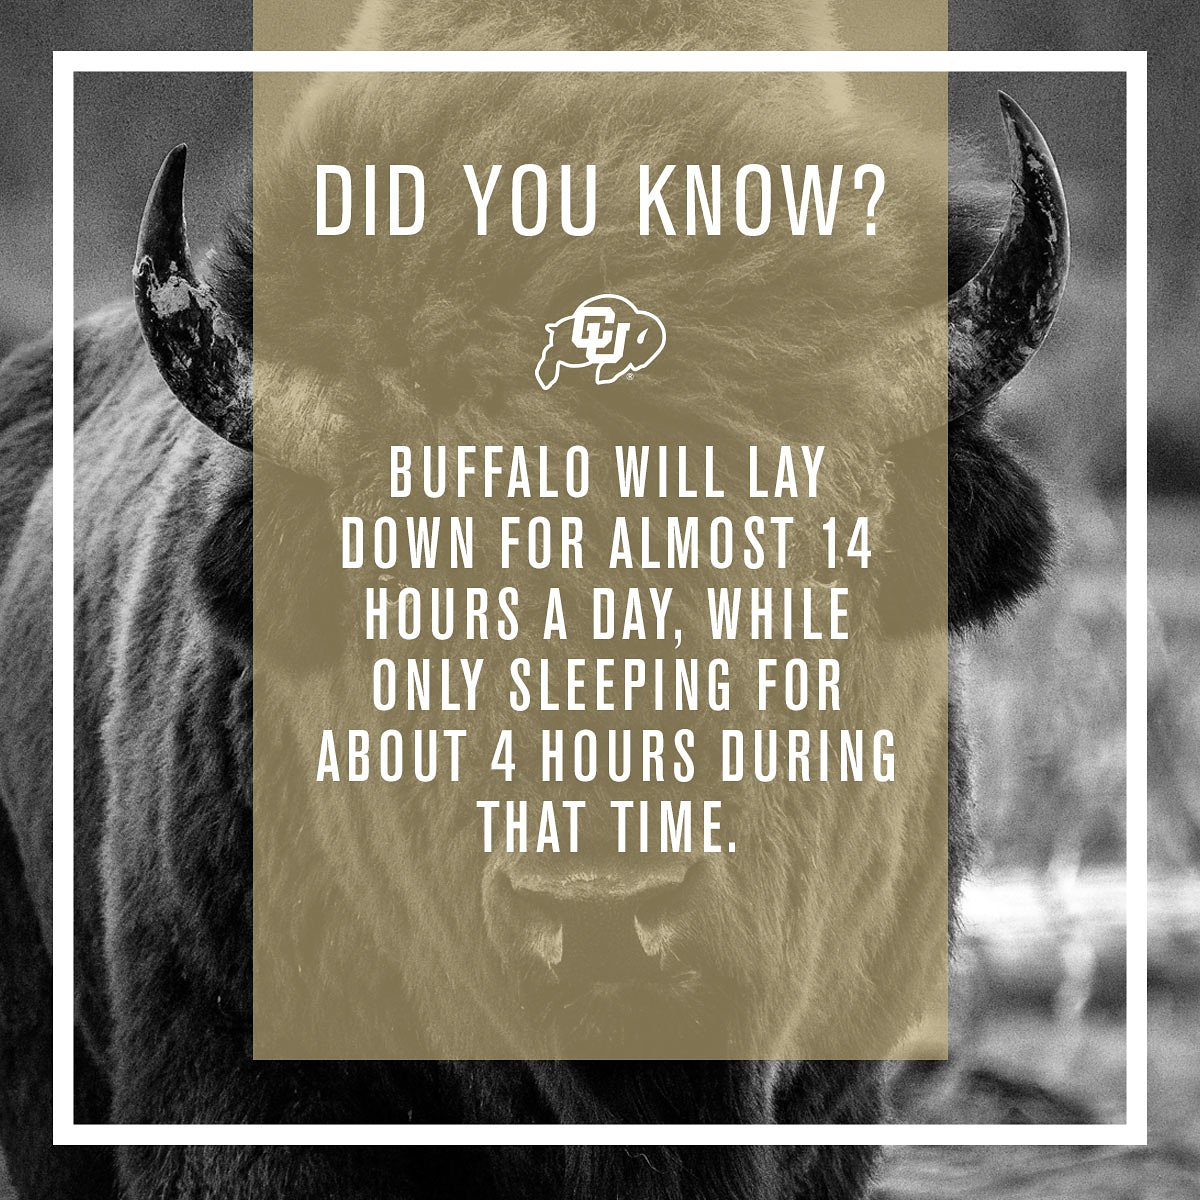 #BuffaloFactFriday - Buffalo do lay down quite a lot throughout the day for a few hours at a time, but do not sleep for very long. When they are not laying down they are up grazing.  #GoBuffs #RunRalphieRun